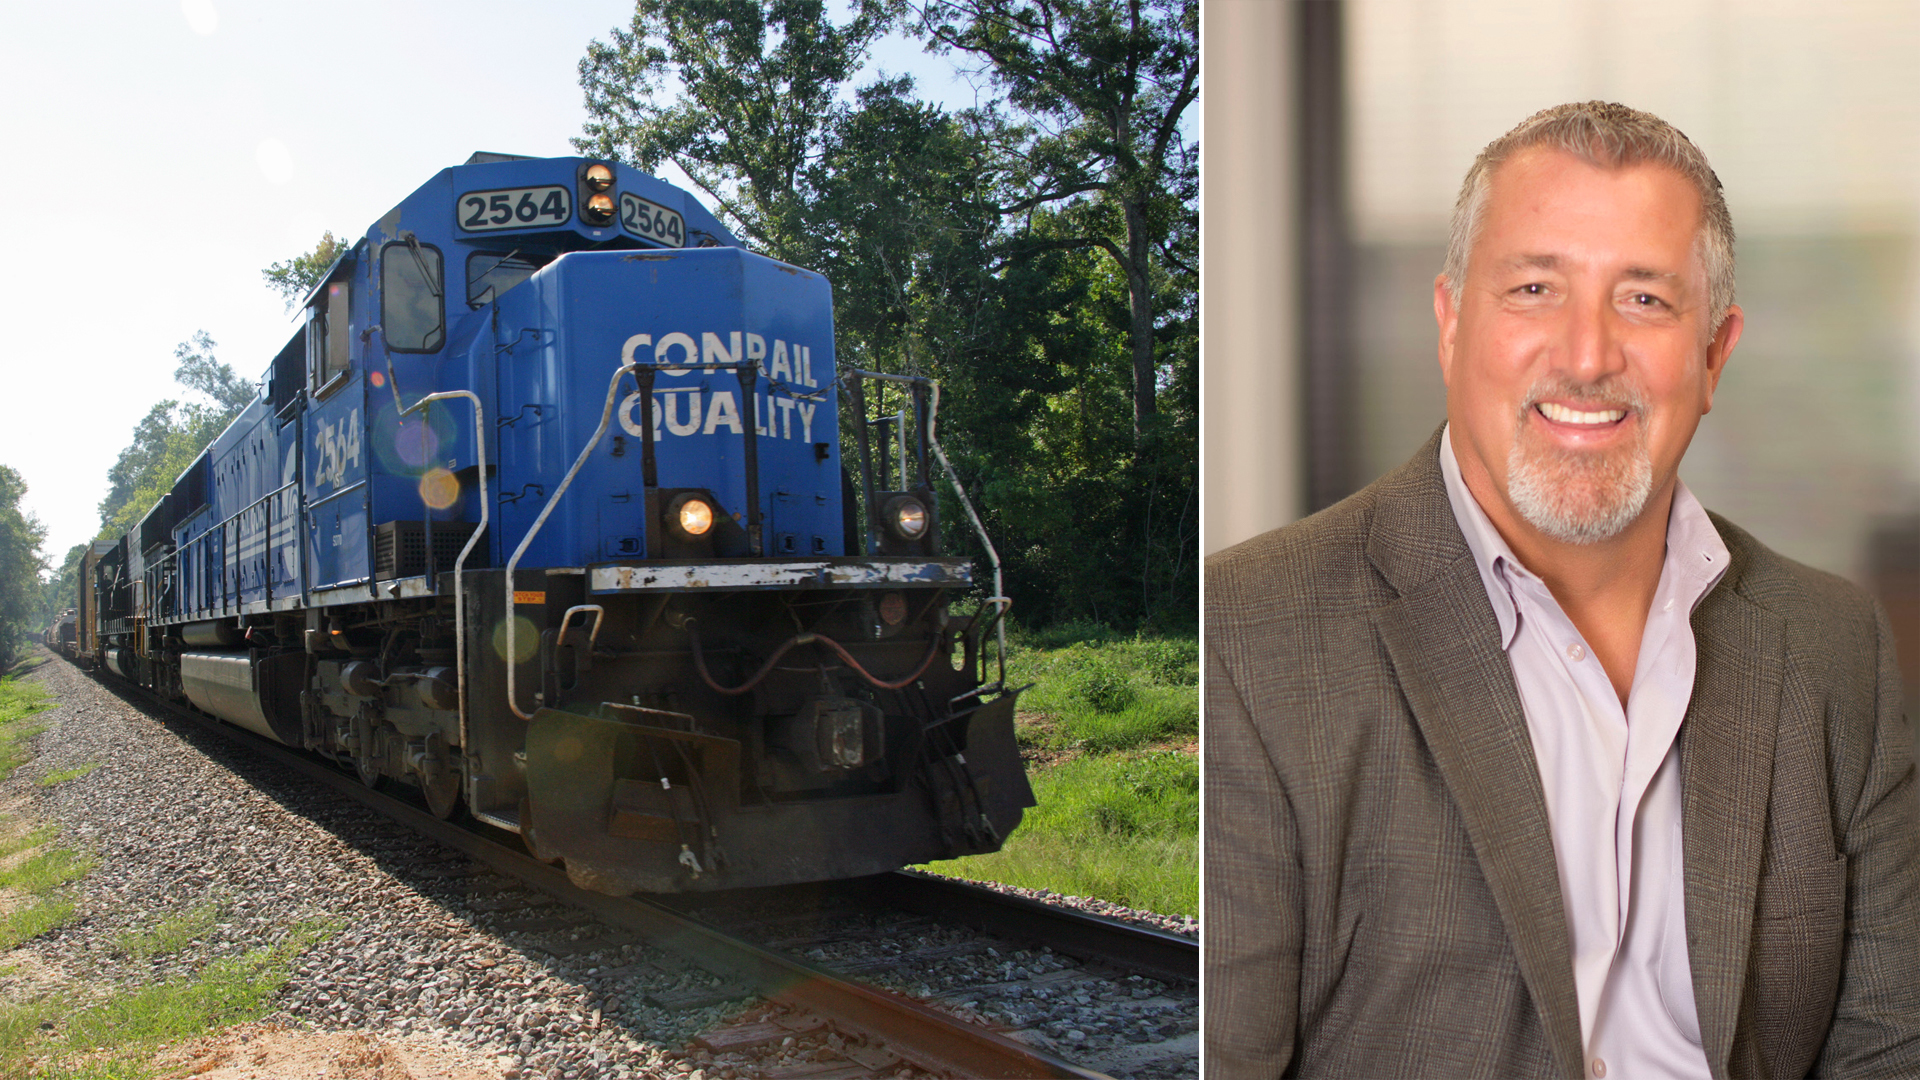 A composite image of two photographs. A Conrail train locomotive on the left and a man on the right.